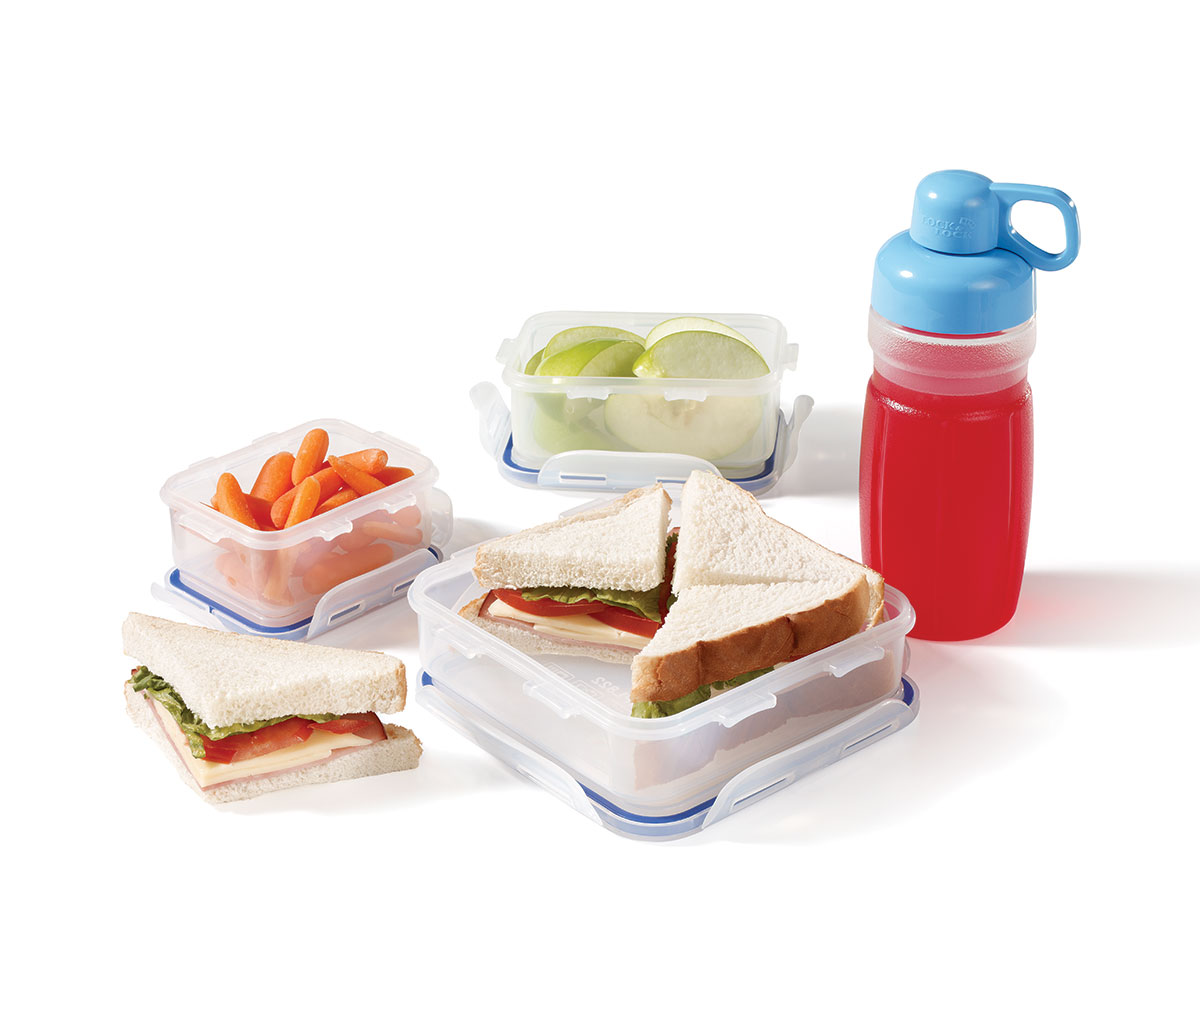 5 Back-to-School Meal Prep Tips